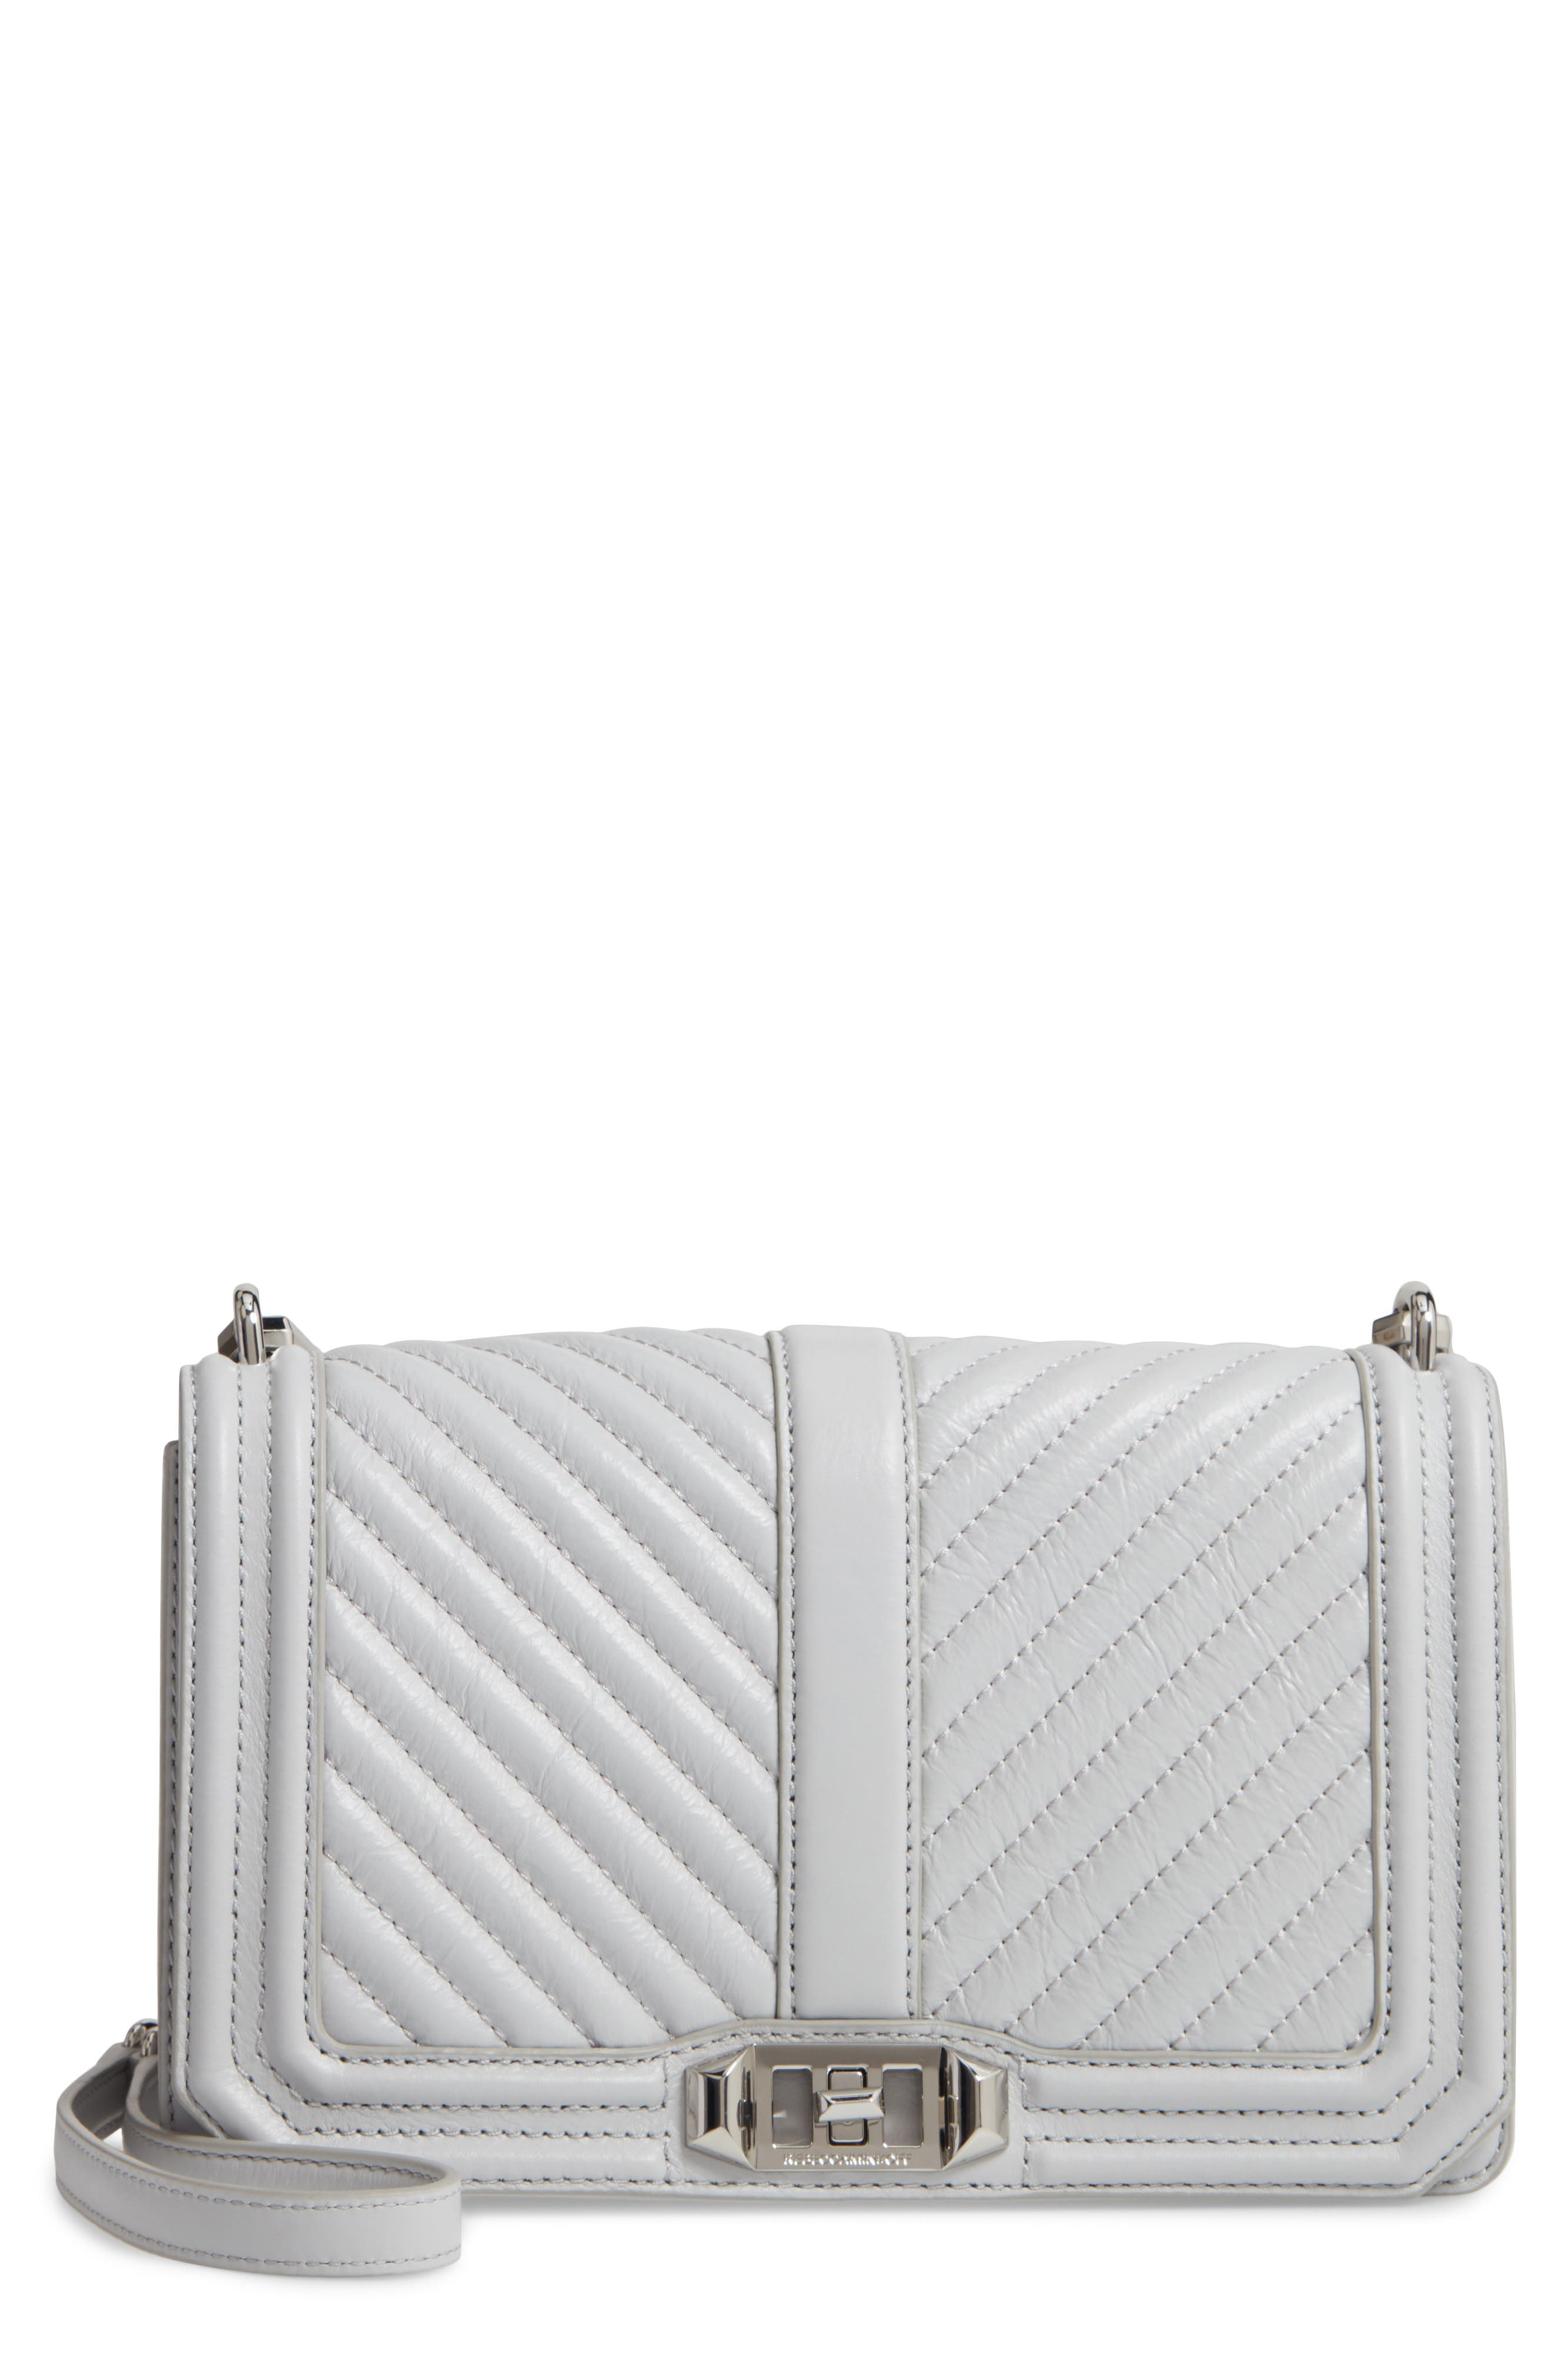 REBECCA MINKOFF 'Chevron Quilted Love' Crossbody Bag, Main, color, ICE GREY